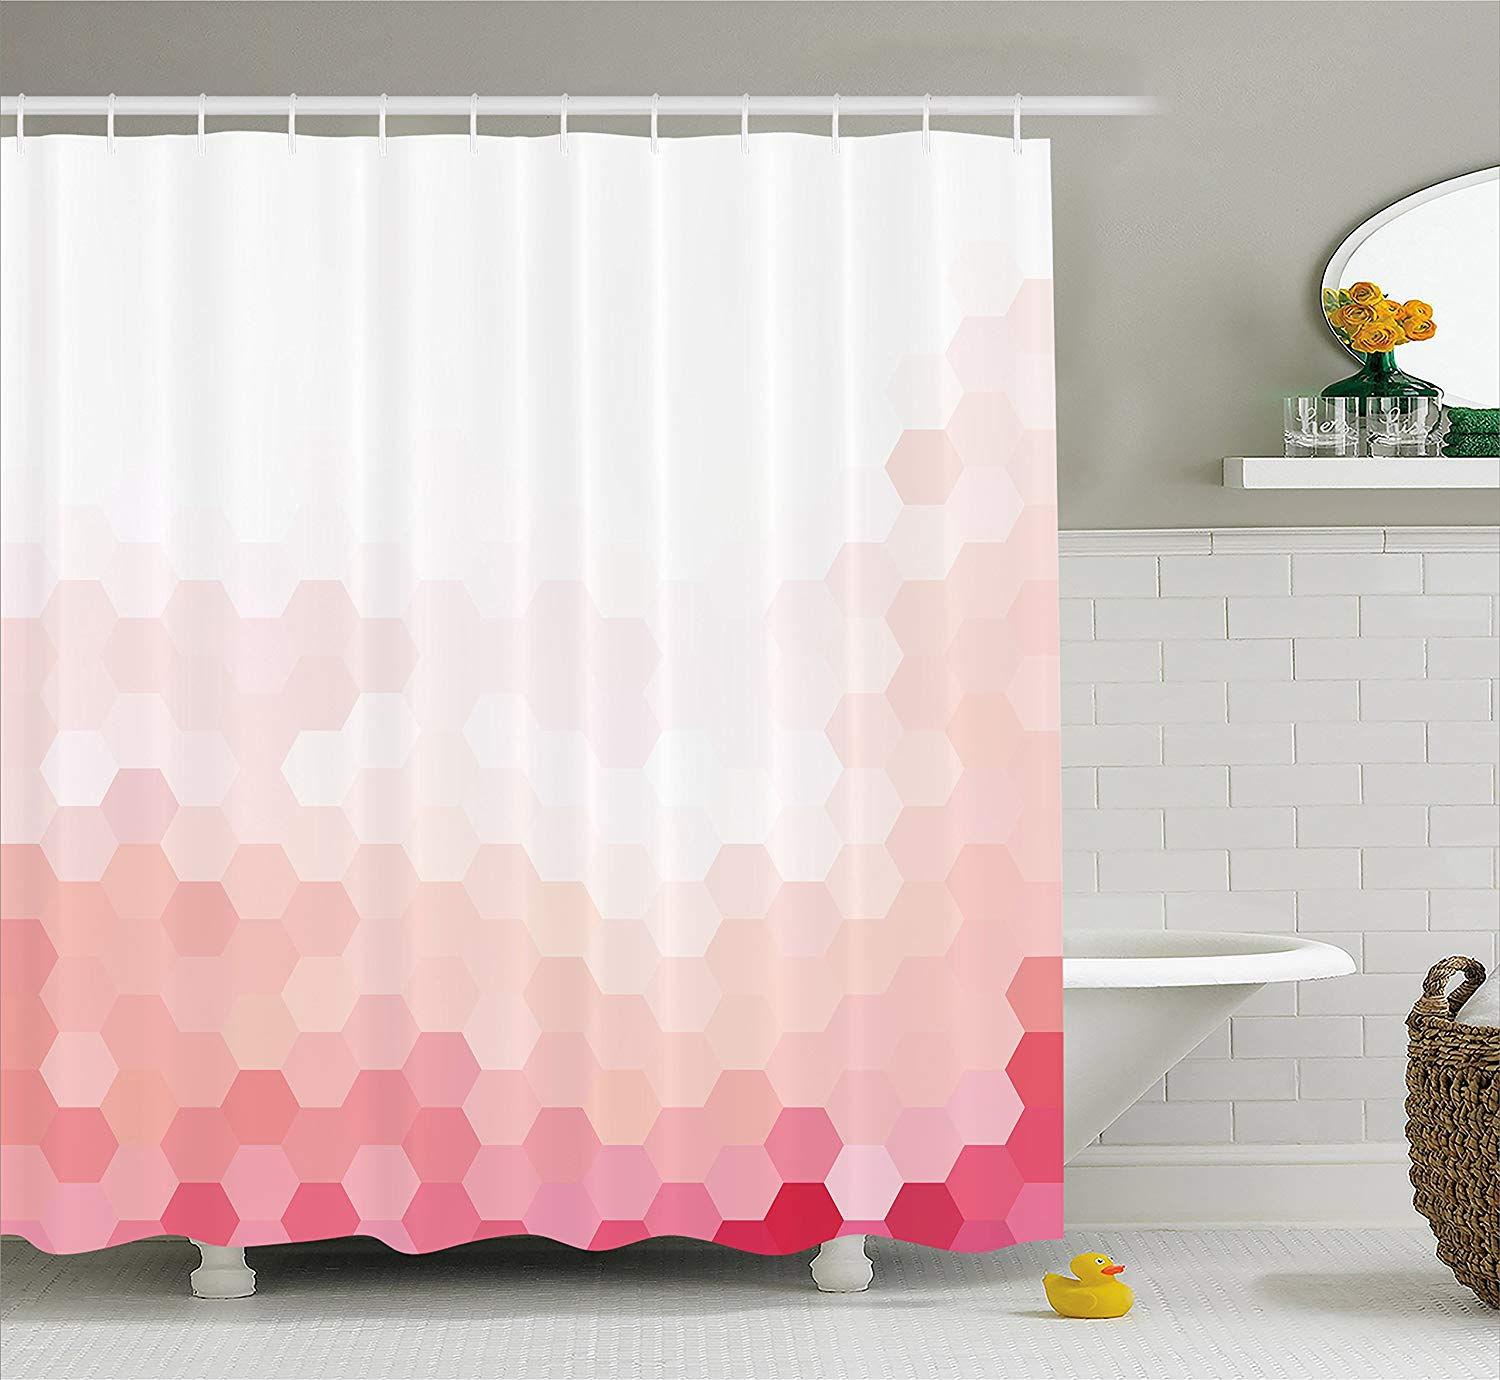 Cherry Blossoms Mt Fuji Shower Curtain Liner Waterproof